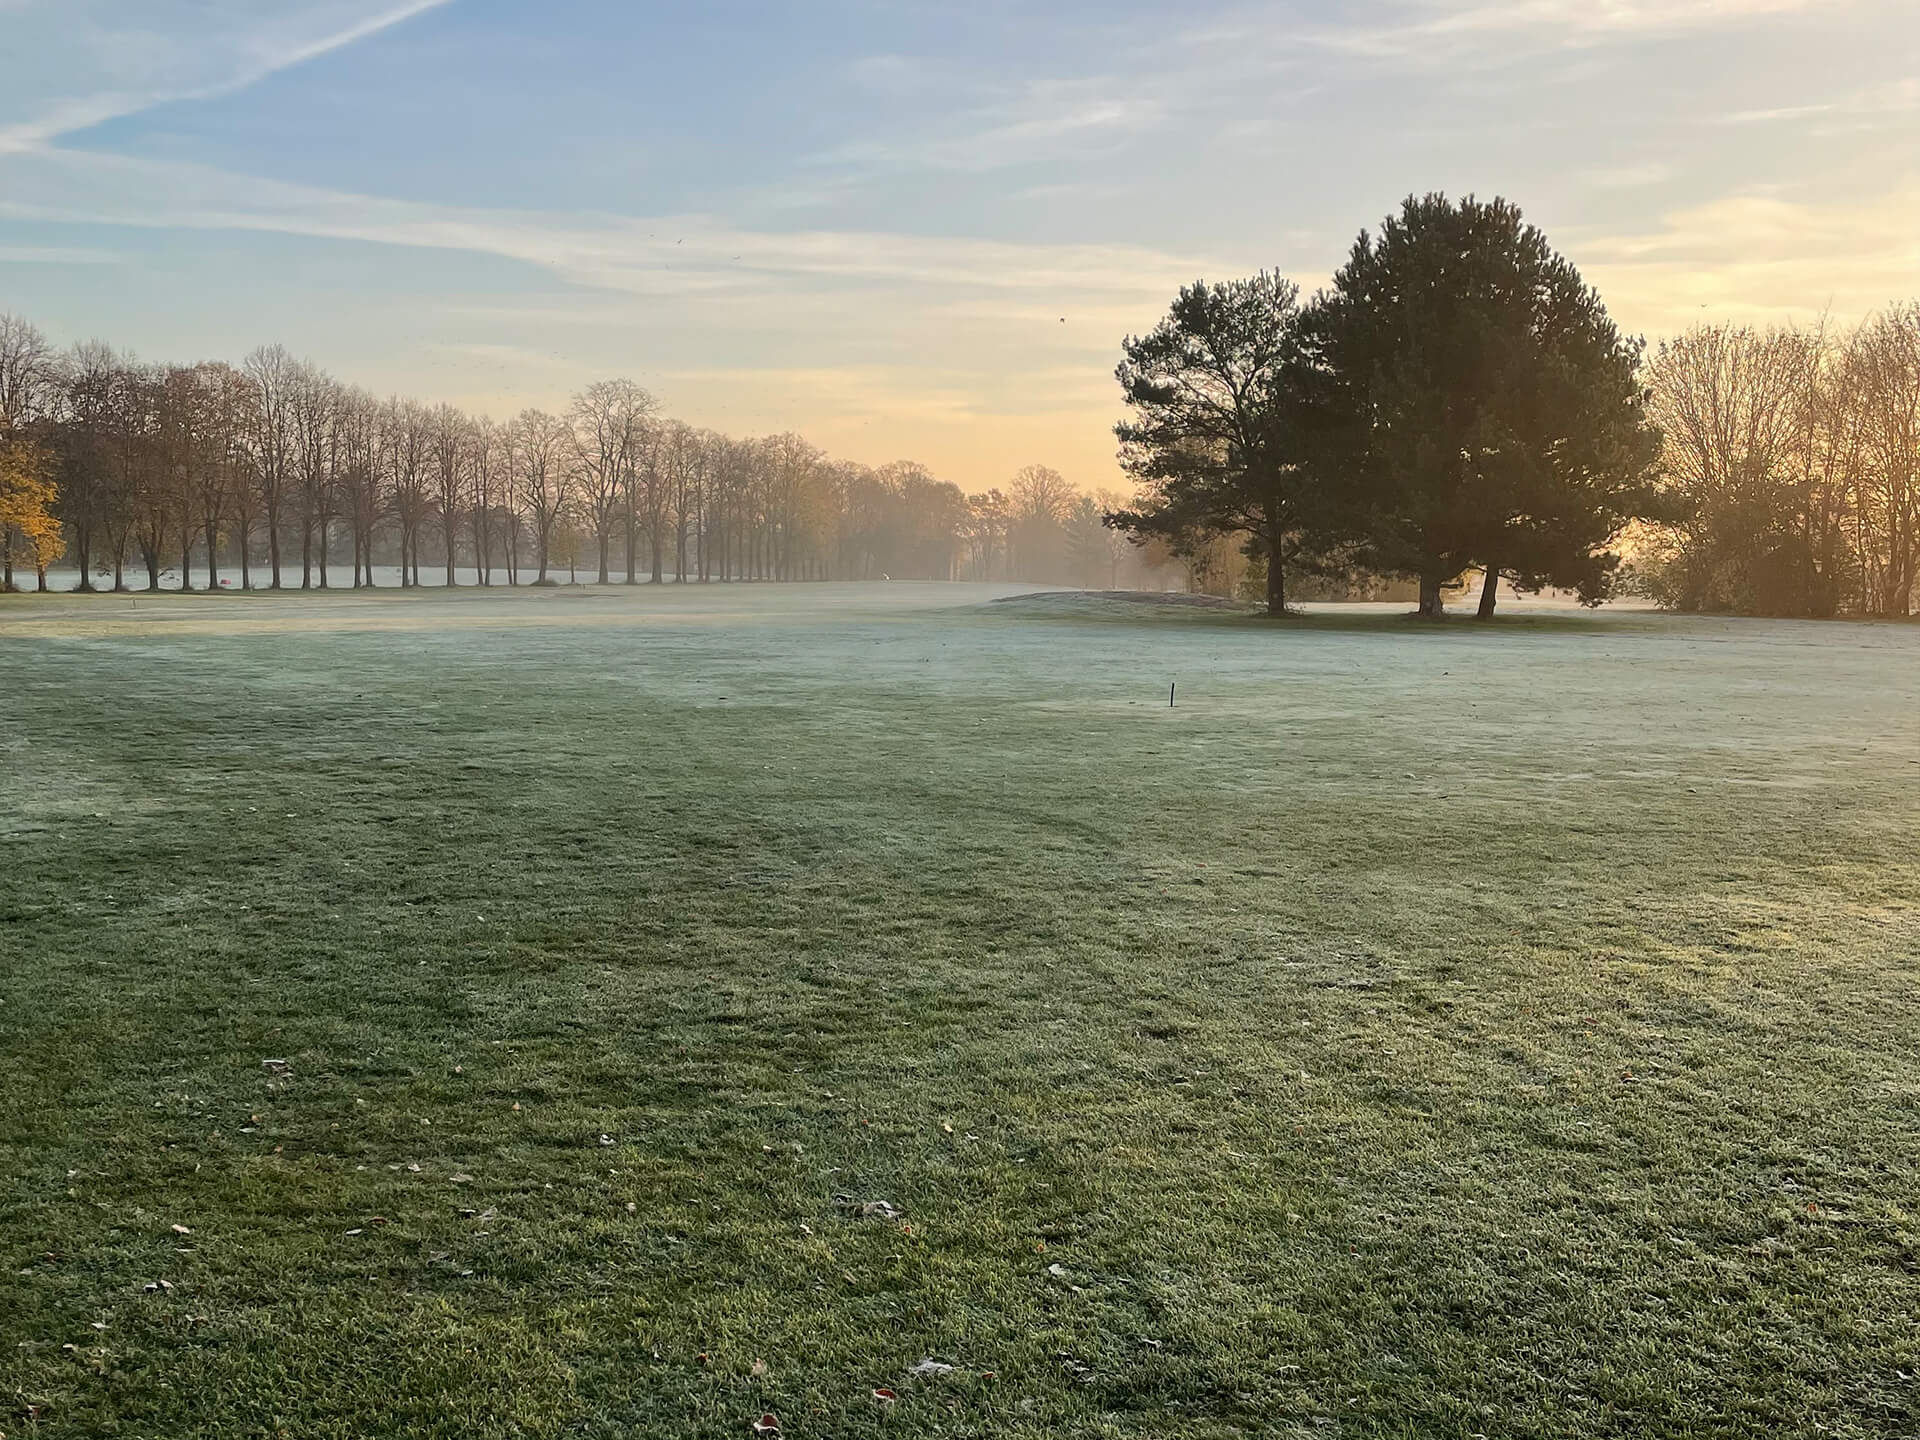 https://golfclub-peckeloh.de/wp-content/uploads/2020/11/Herbst_Winter_Header_1.jpg